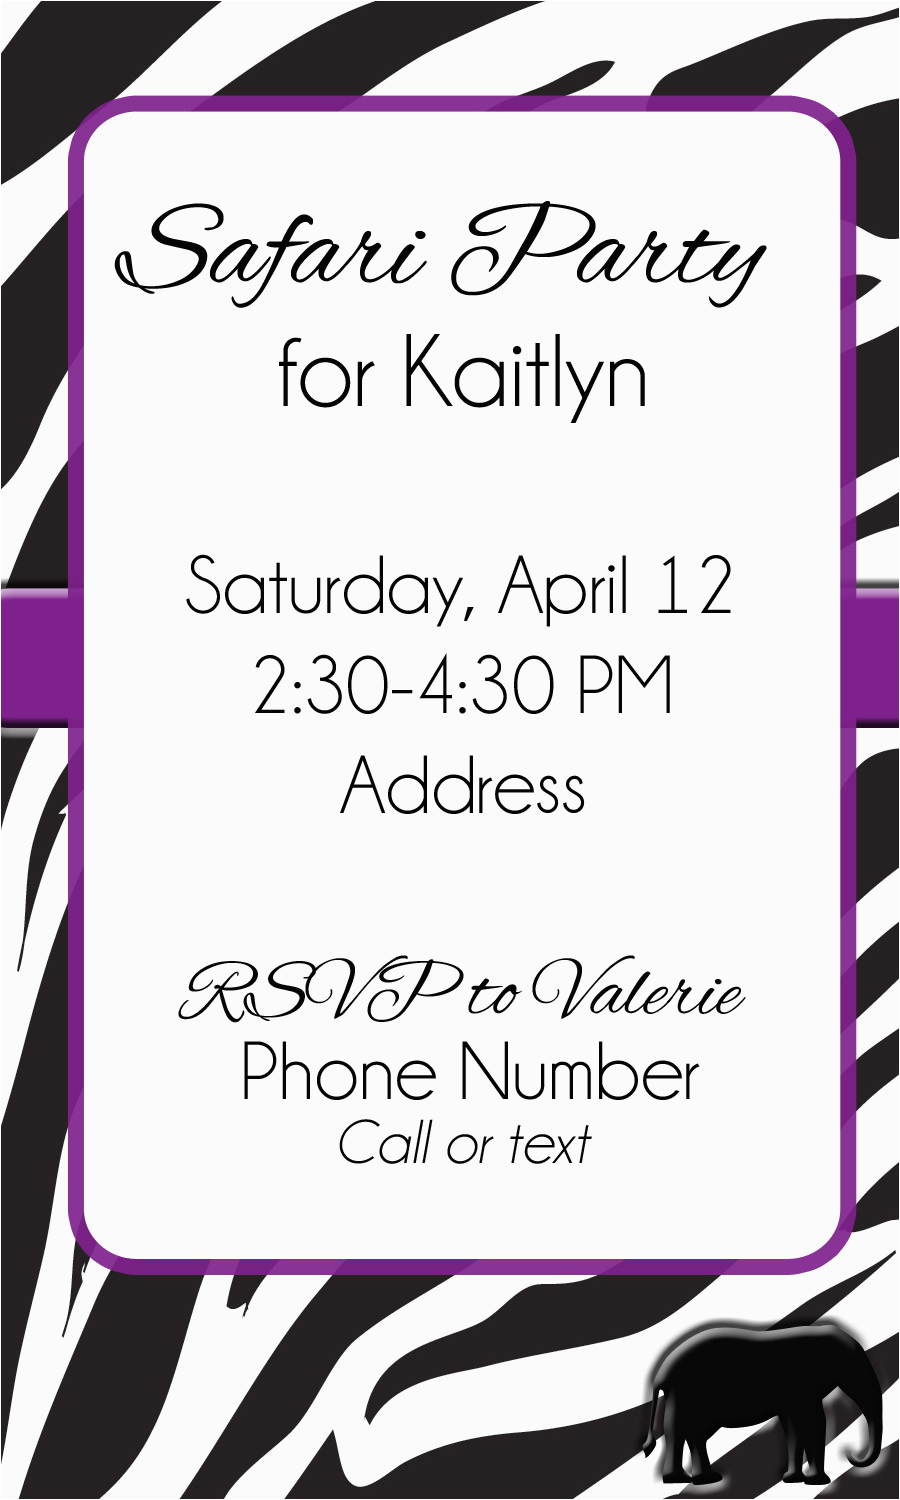 12 Year Old Birthday Party Invitations Invitation Librarry